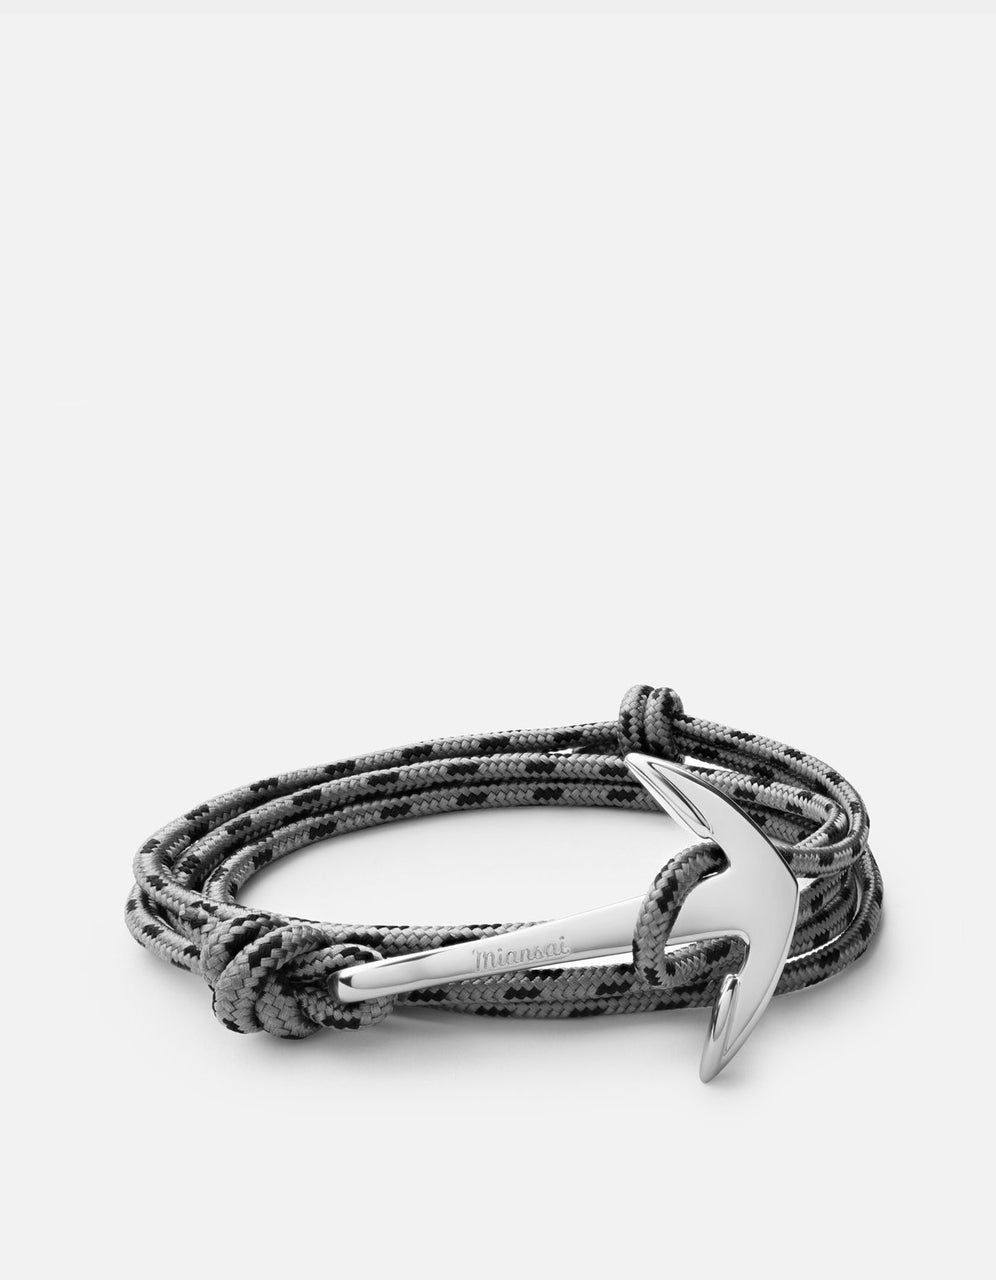 Anchor on Rope bracelet, Polished Silver, Concrete